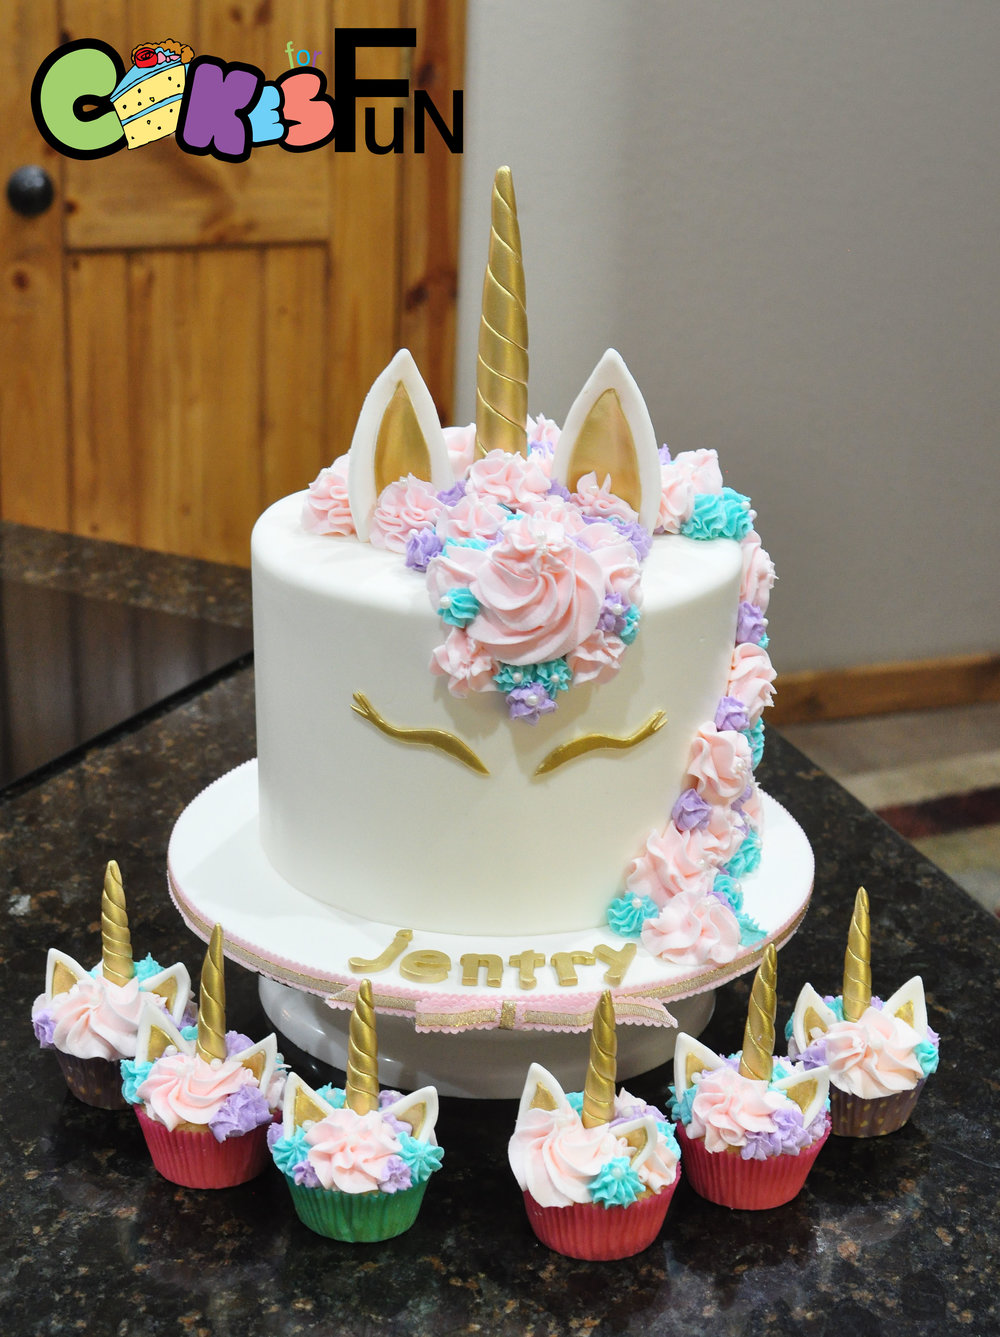 Unicorn cake - bridges-031018.jpg